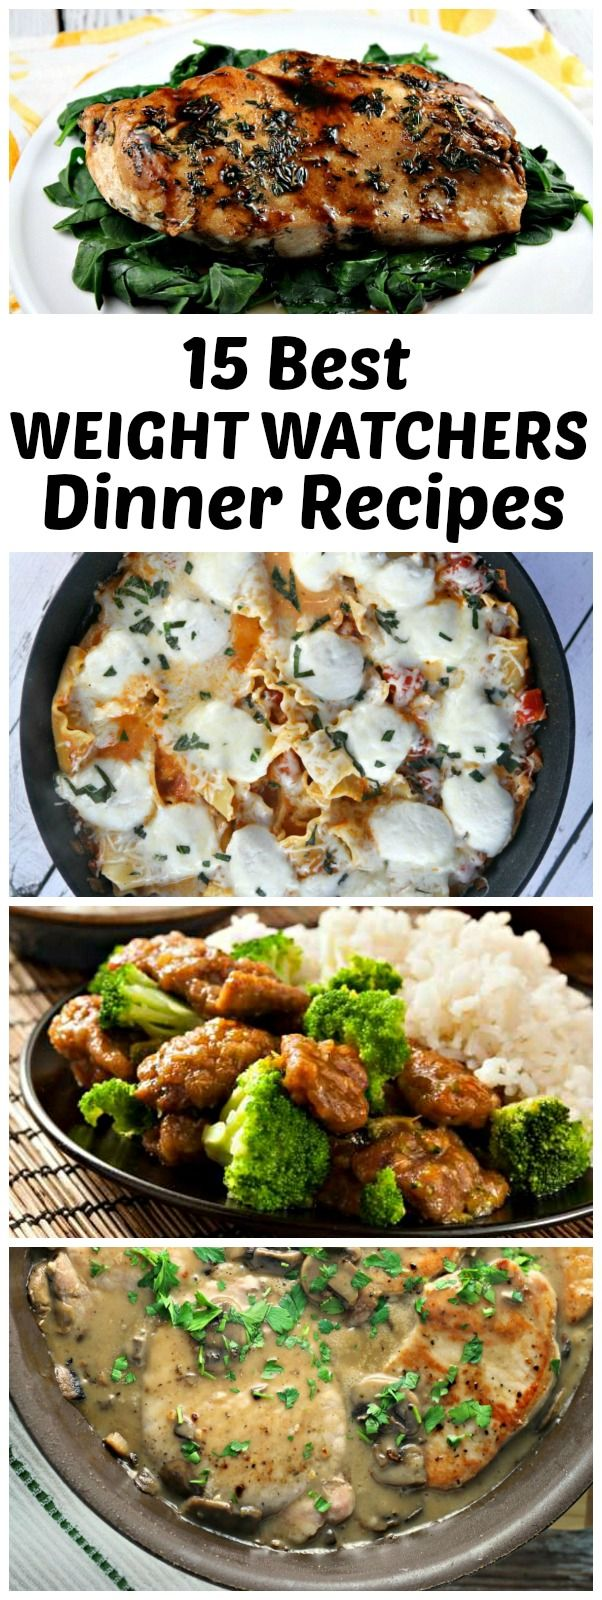 15 Best Weight Watchers Dinner Recipes with Points: included are recipes for Balsamic Chicken, Easy Skillet Lasagna, Slow Cooker Hoisin Chicken, Pork Chops with Dijon Maple Sauce, Beef and Broccoli and more!